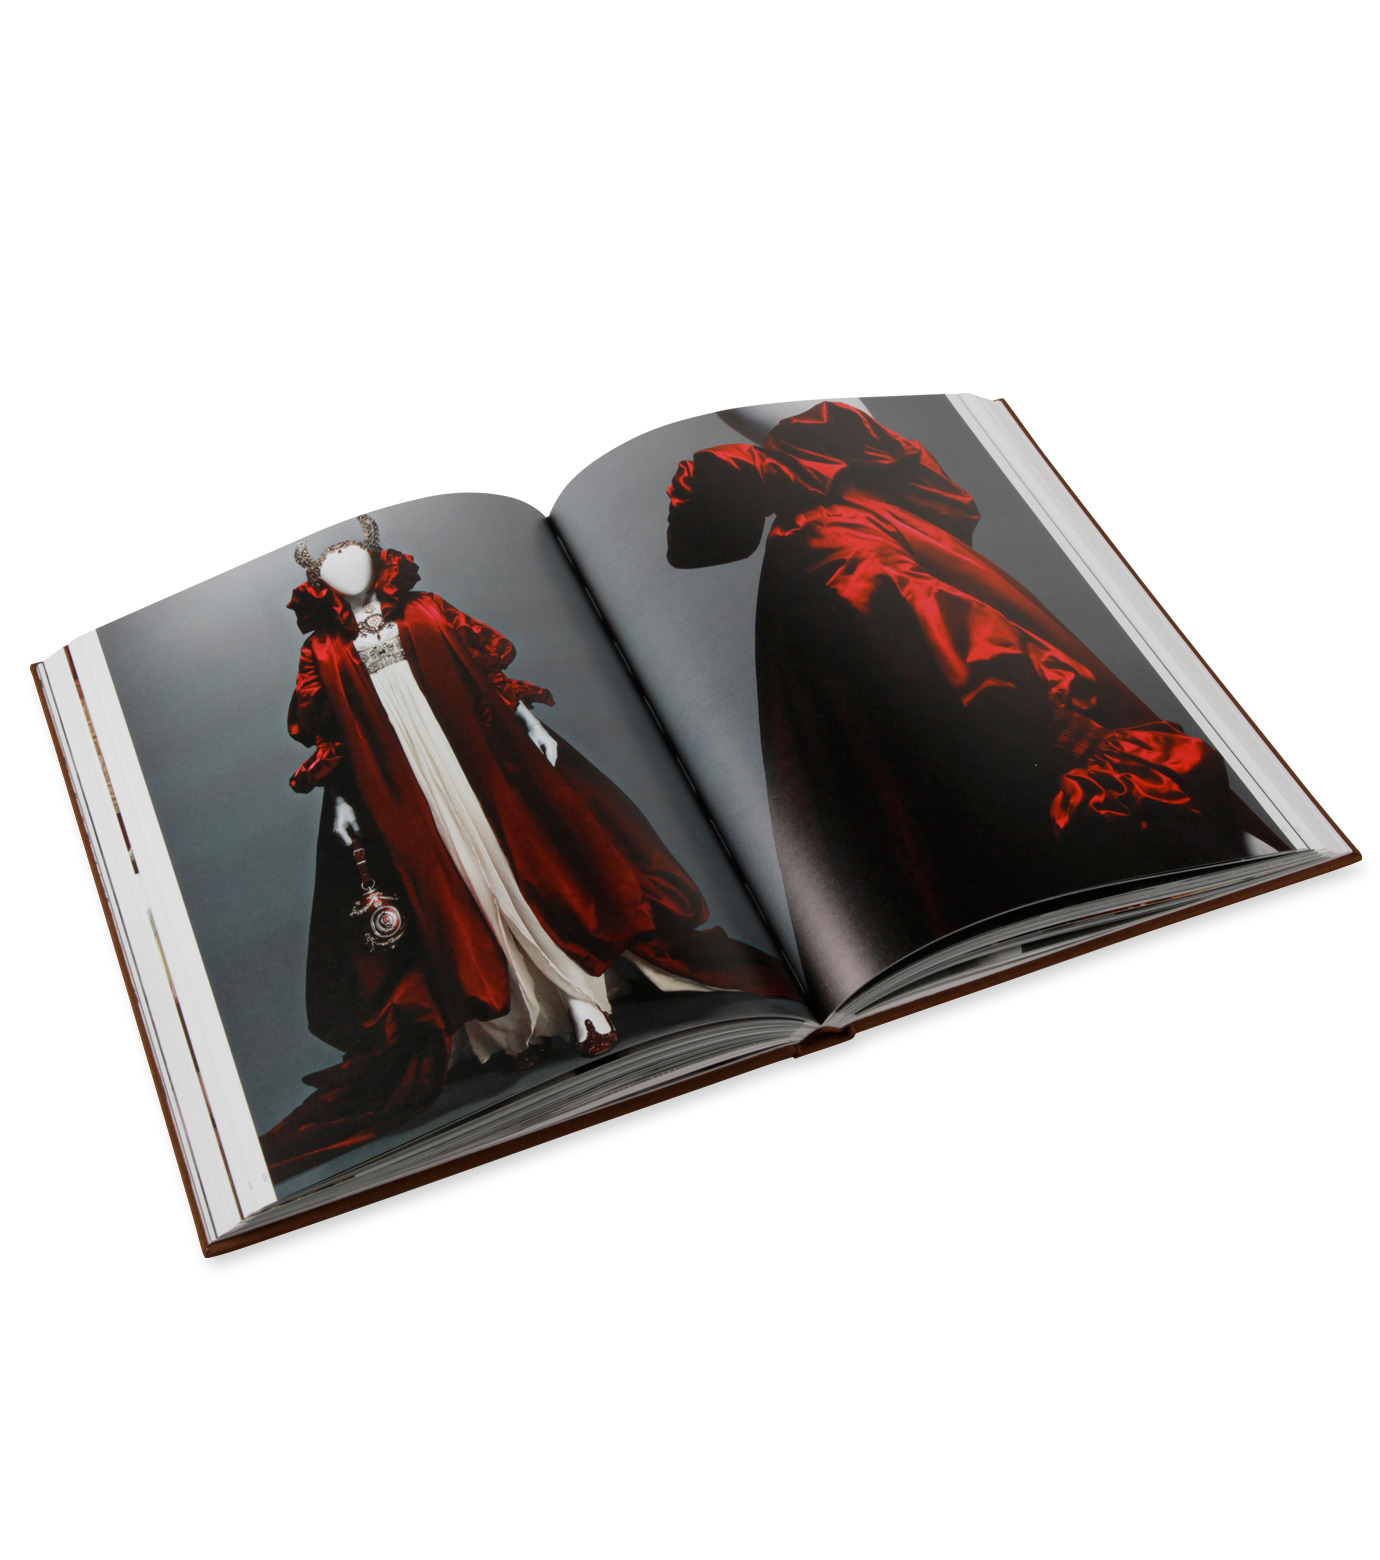 ArtBook(アートブック)のAlexander McQueen: Savage Beauty-SILVER(インテリア/OTHER-GOODS/interior/OTHER-GOODS)-300-16978-2-1 拡大詳細画像3